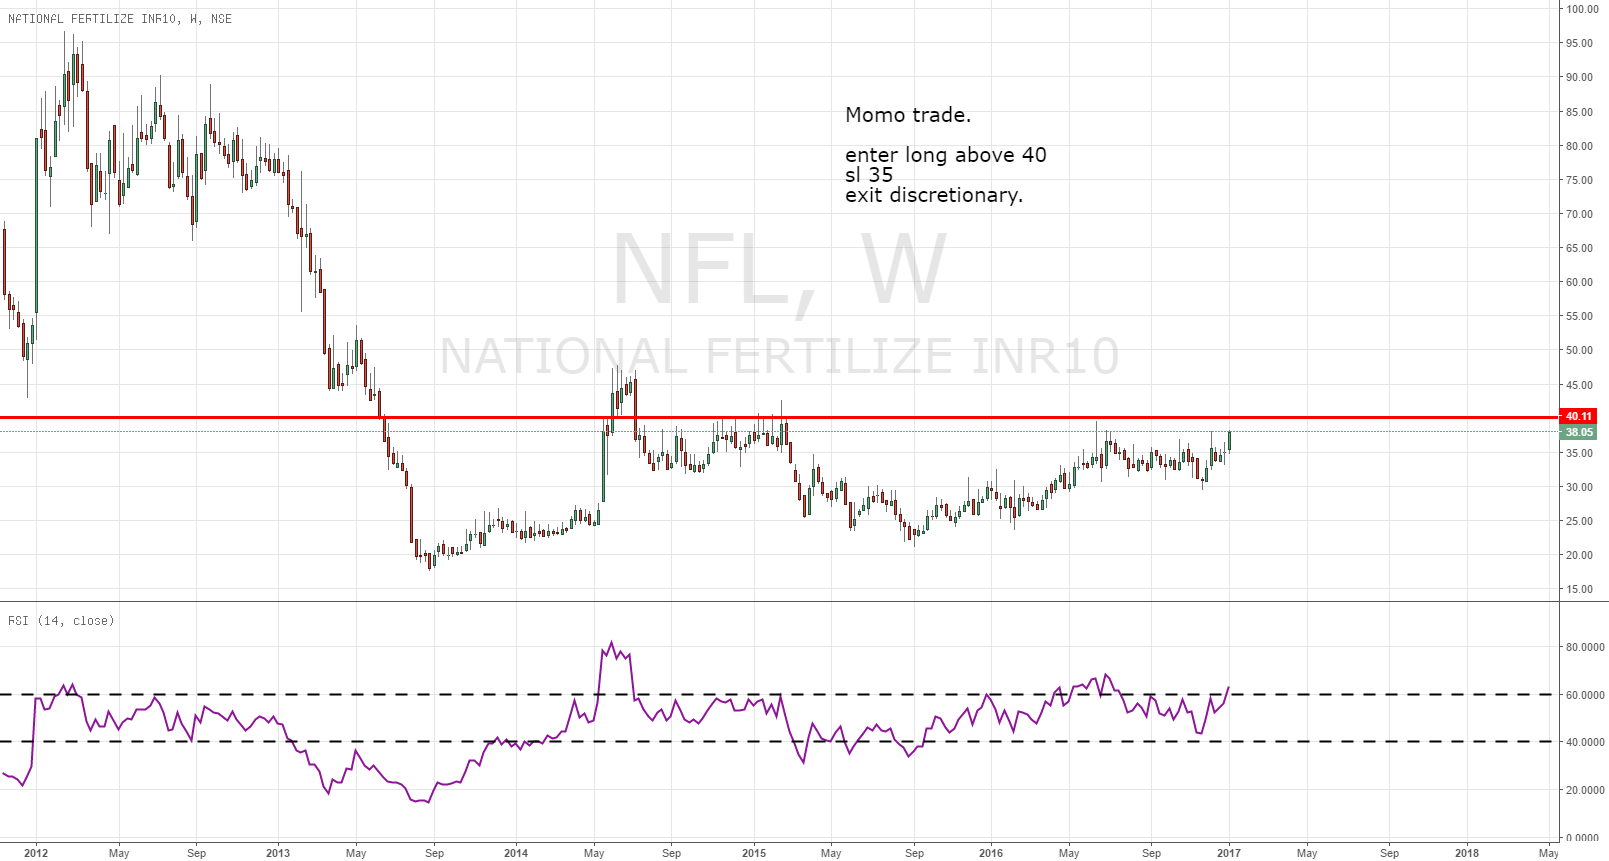 Possible Momentum trade for shortterm NFL